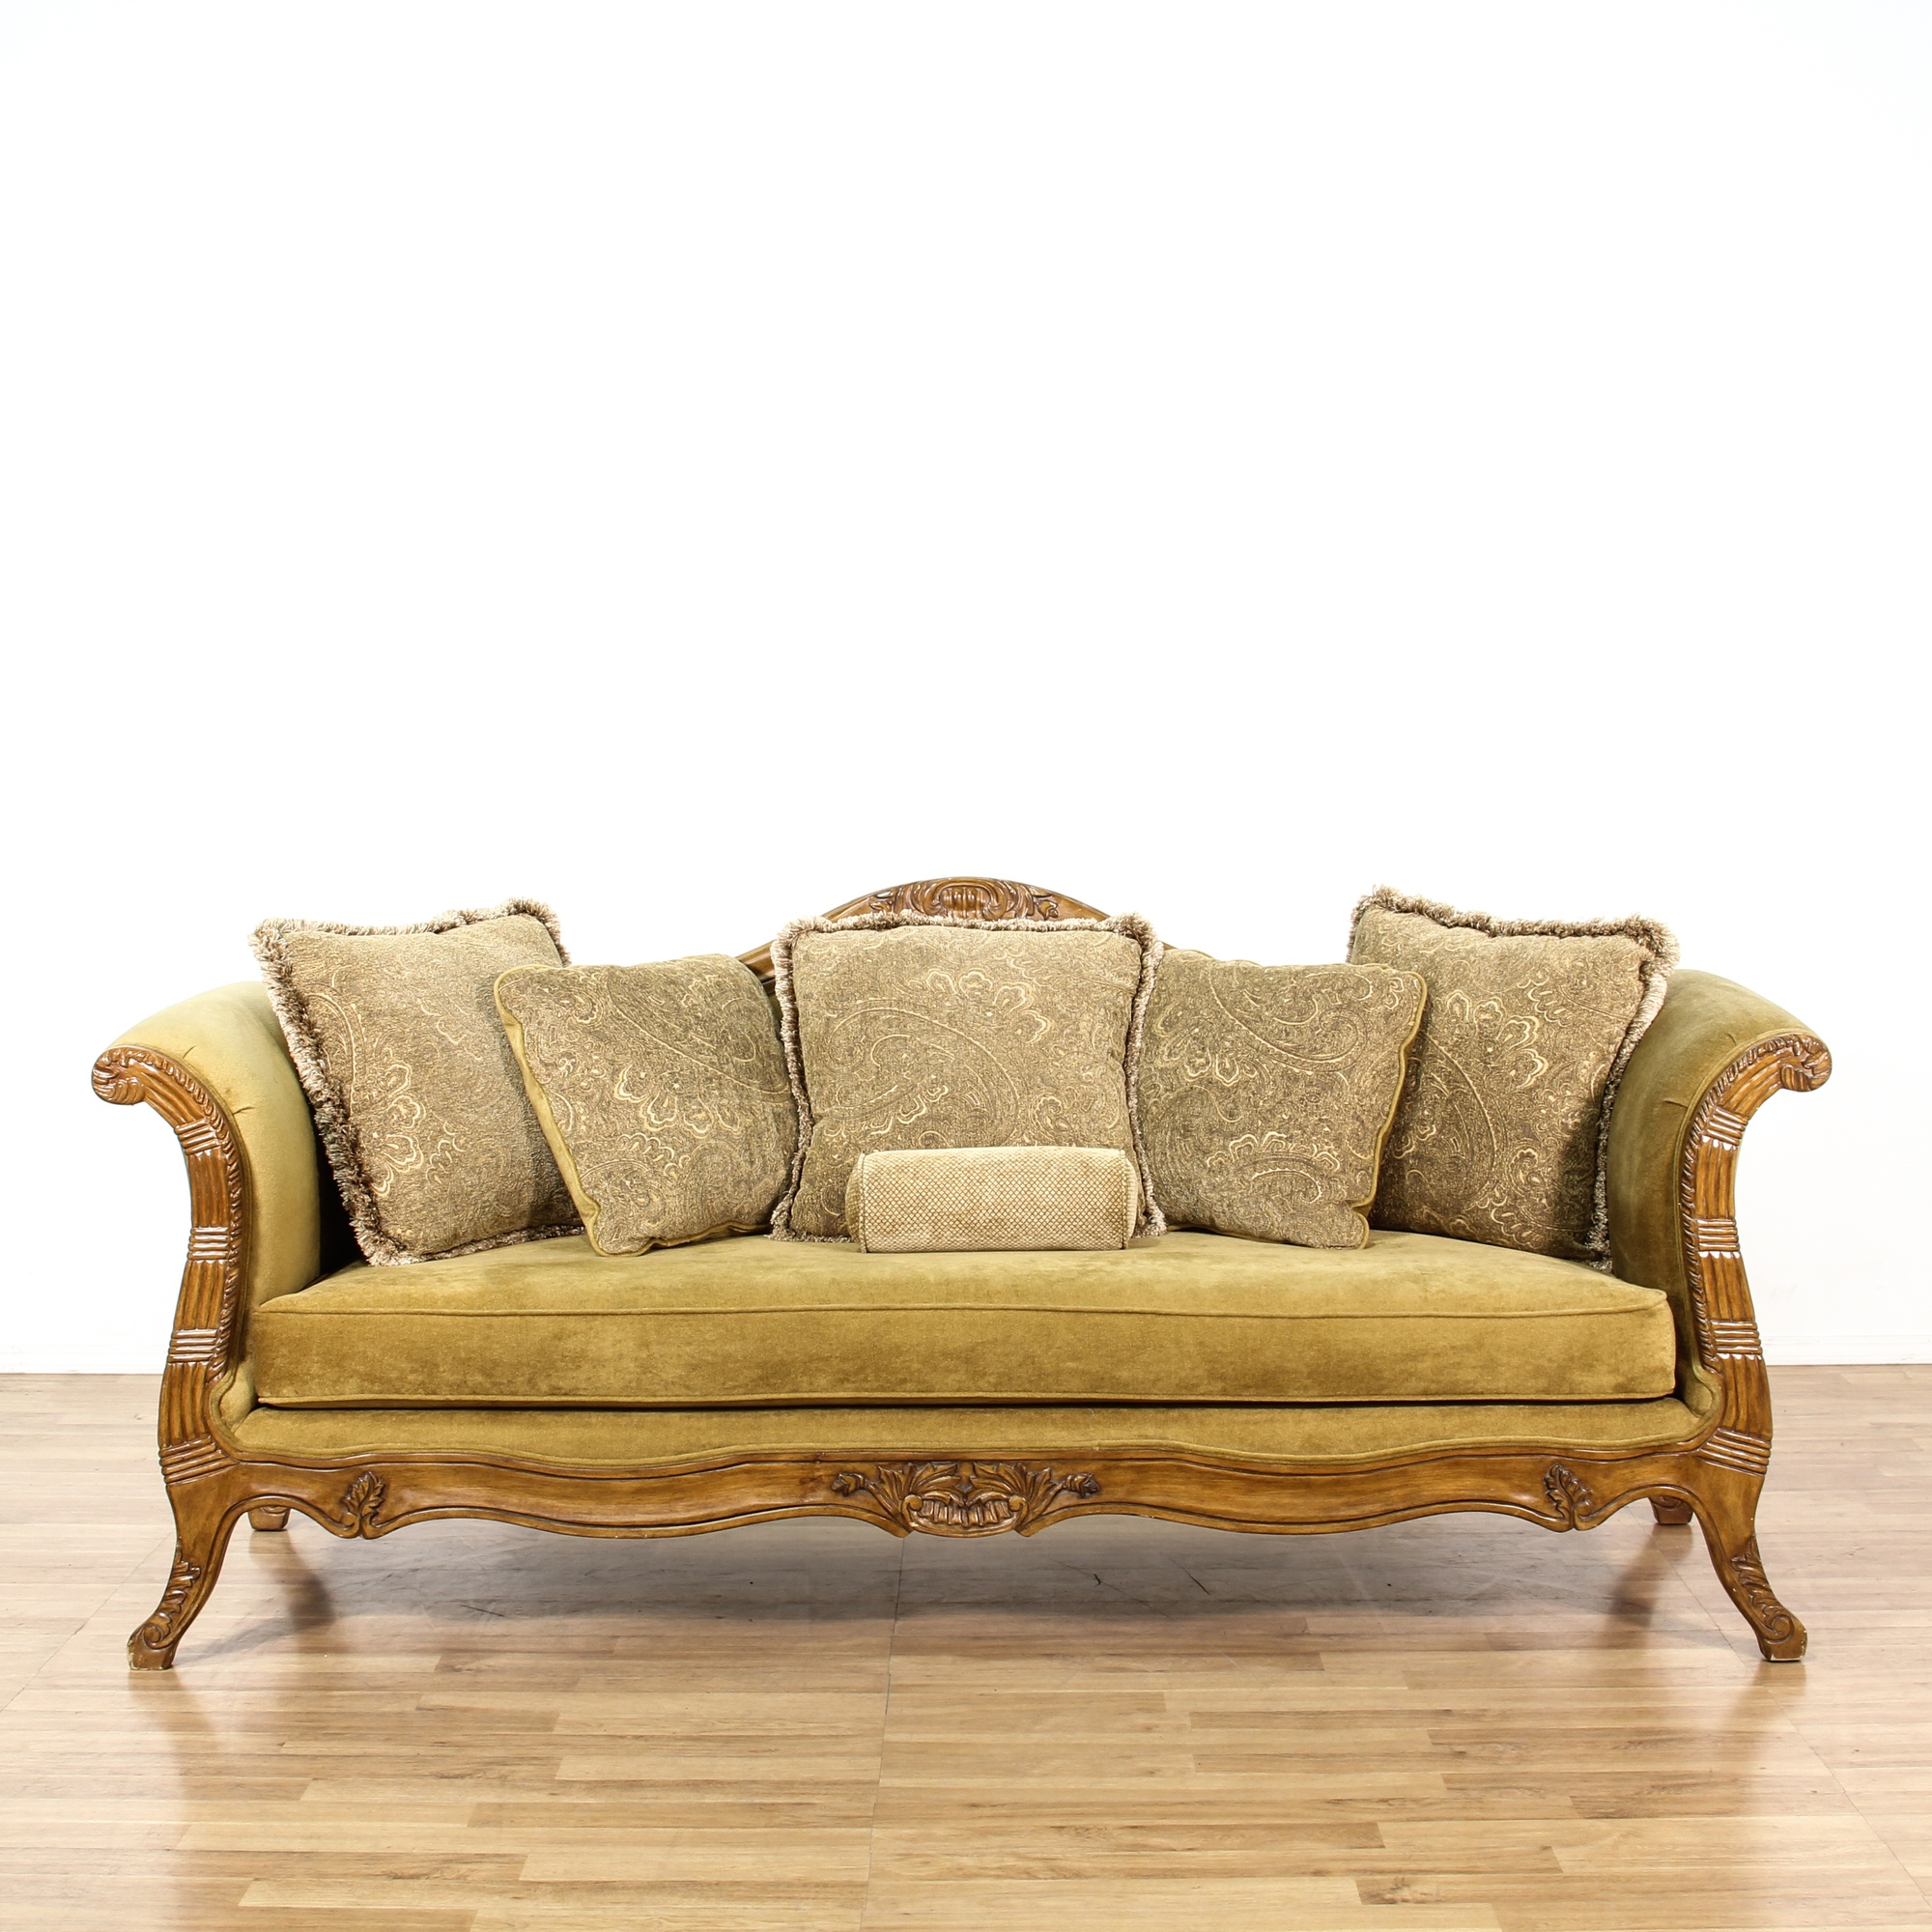 Green Bent Arm Single Cushion Sofa W Wood Trim Loveseat Vintage Furniture San Diego Los Angeles